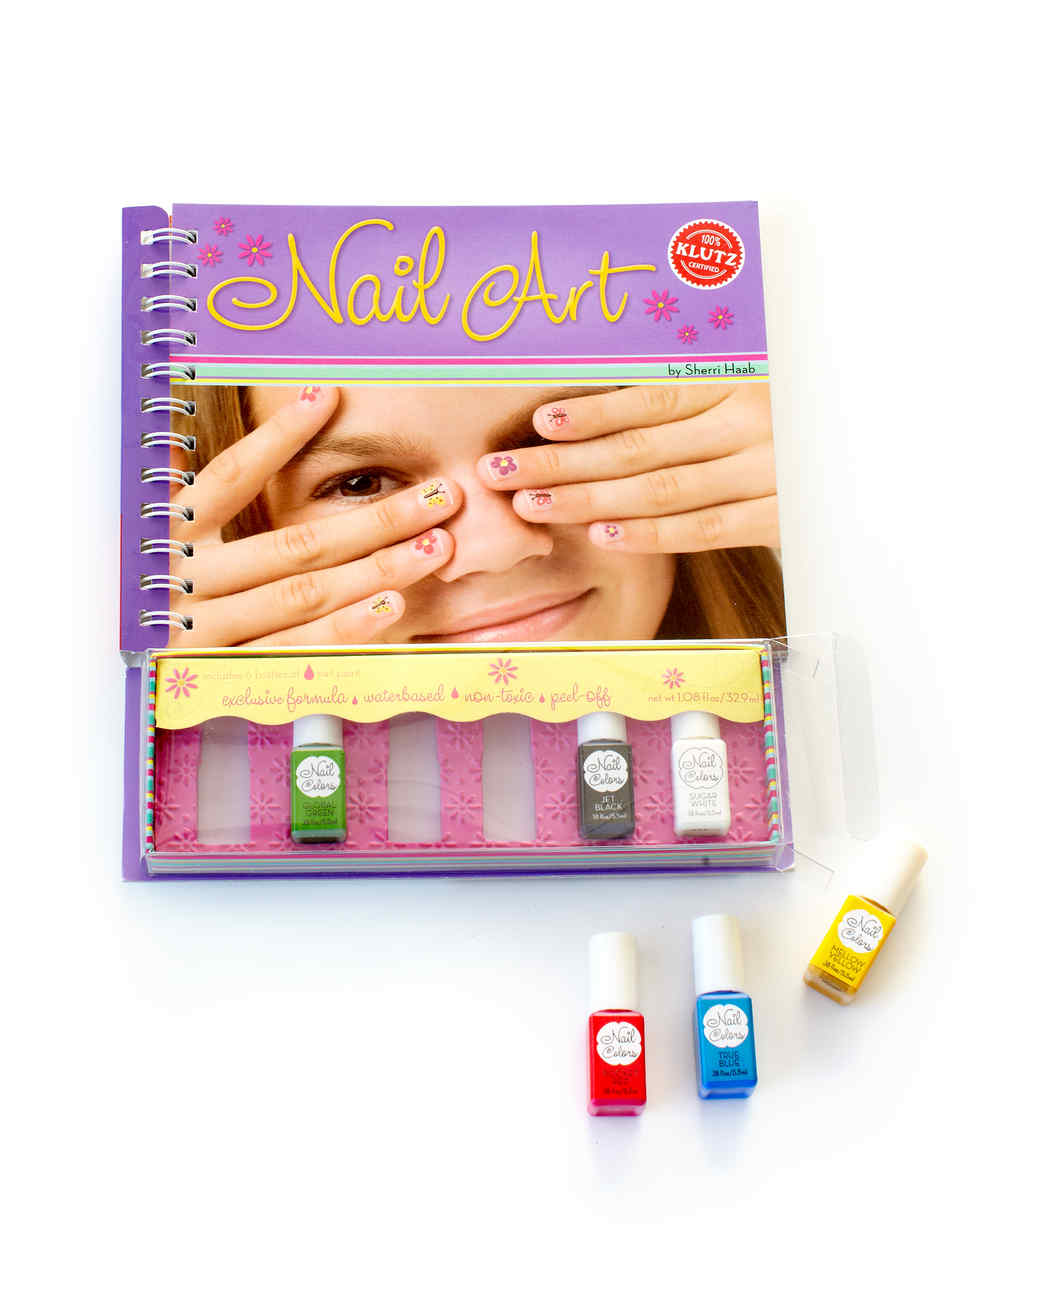 camp-care-package-nail-art-book-wld108705-2.jpg